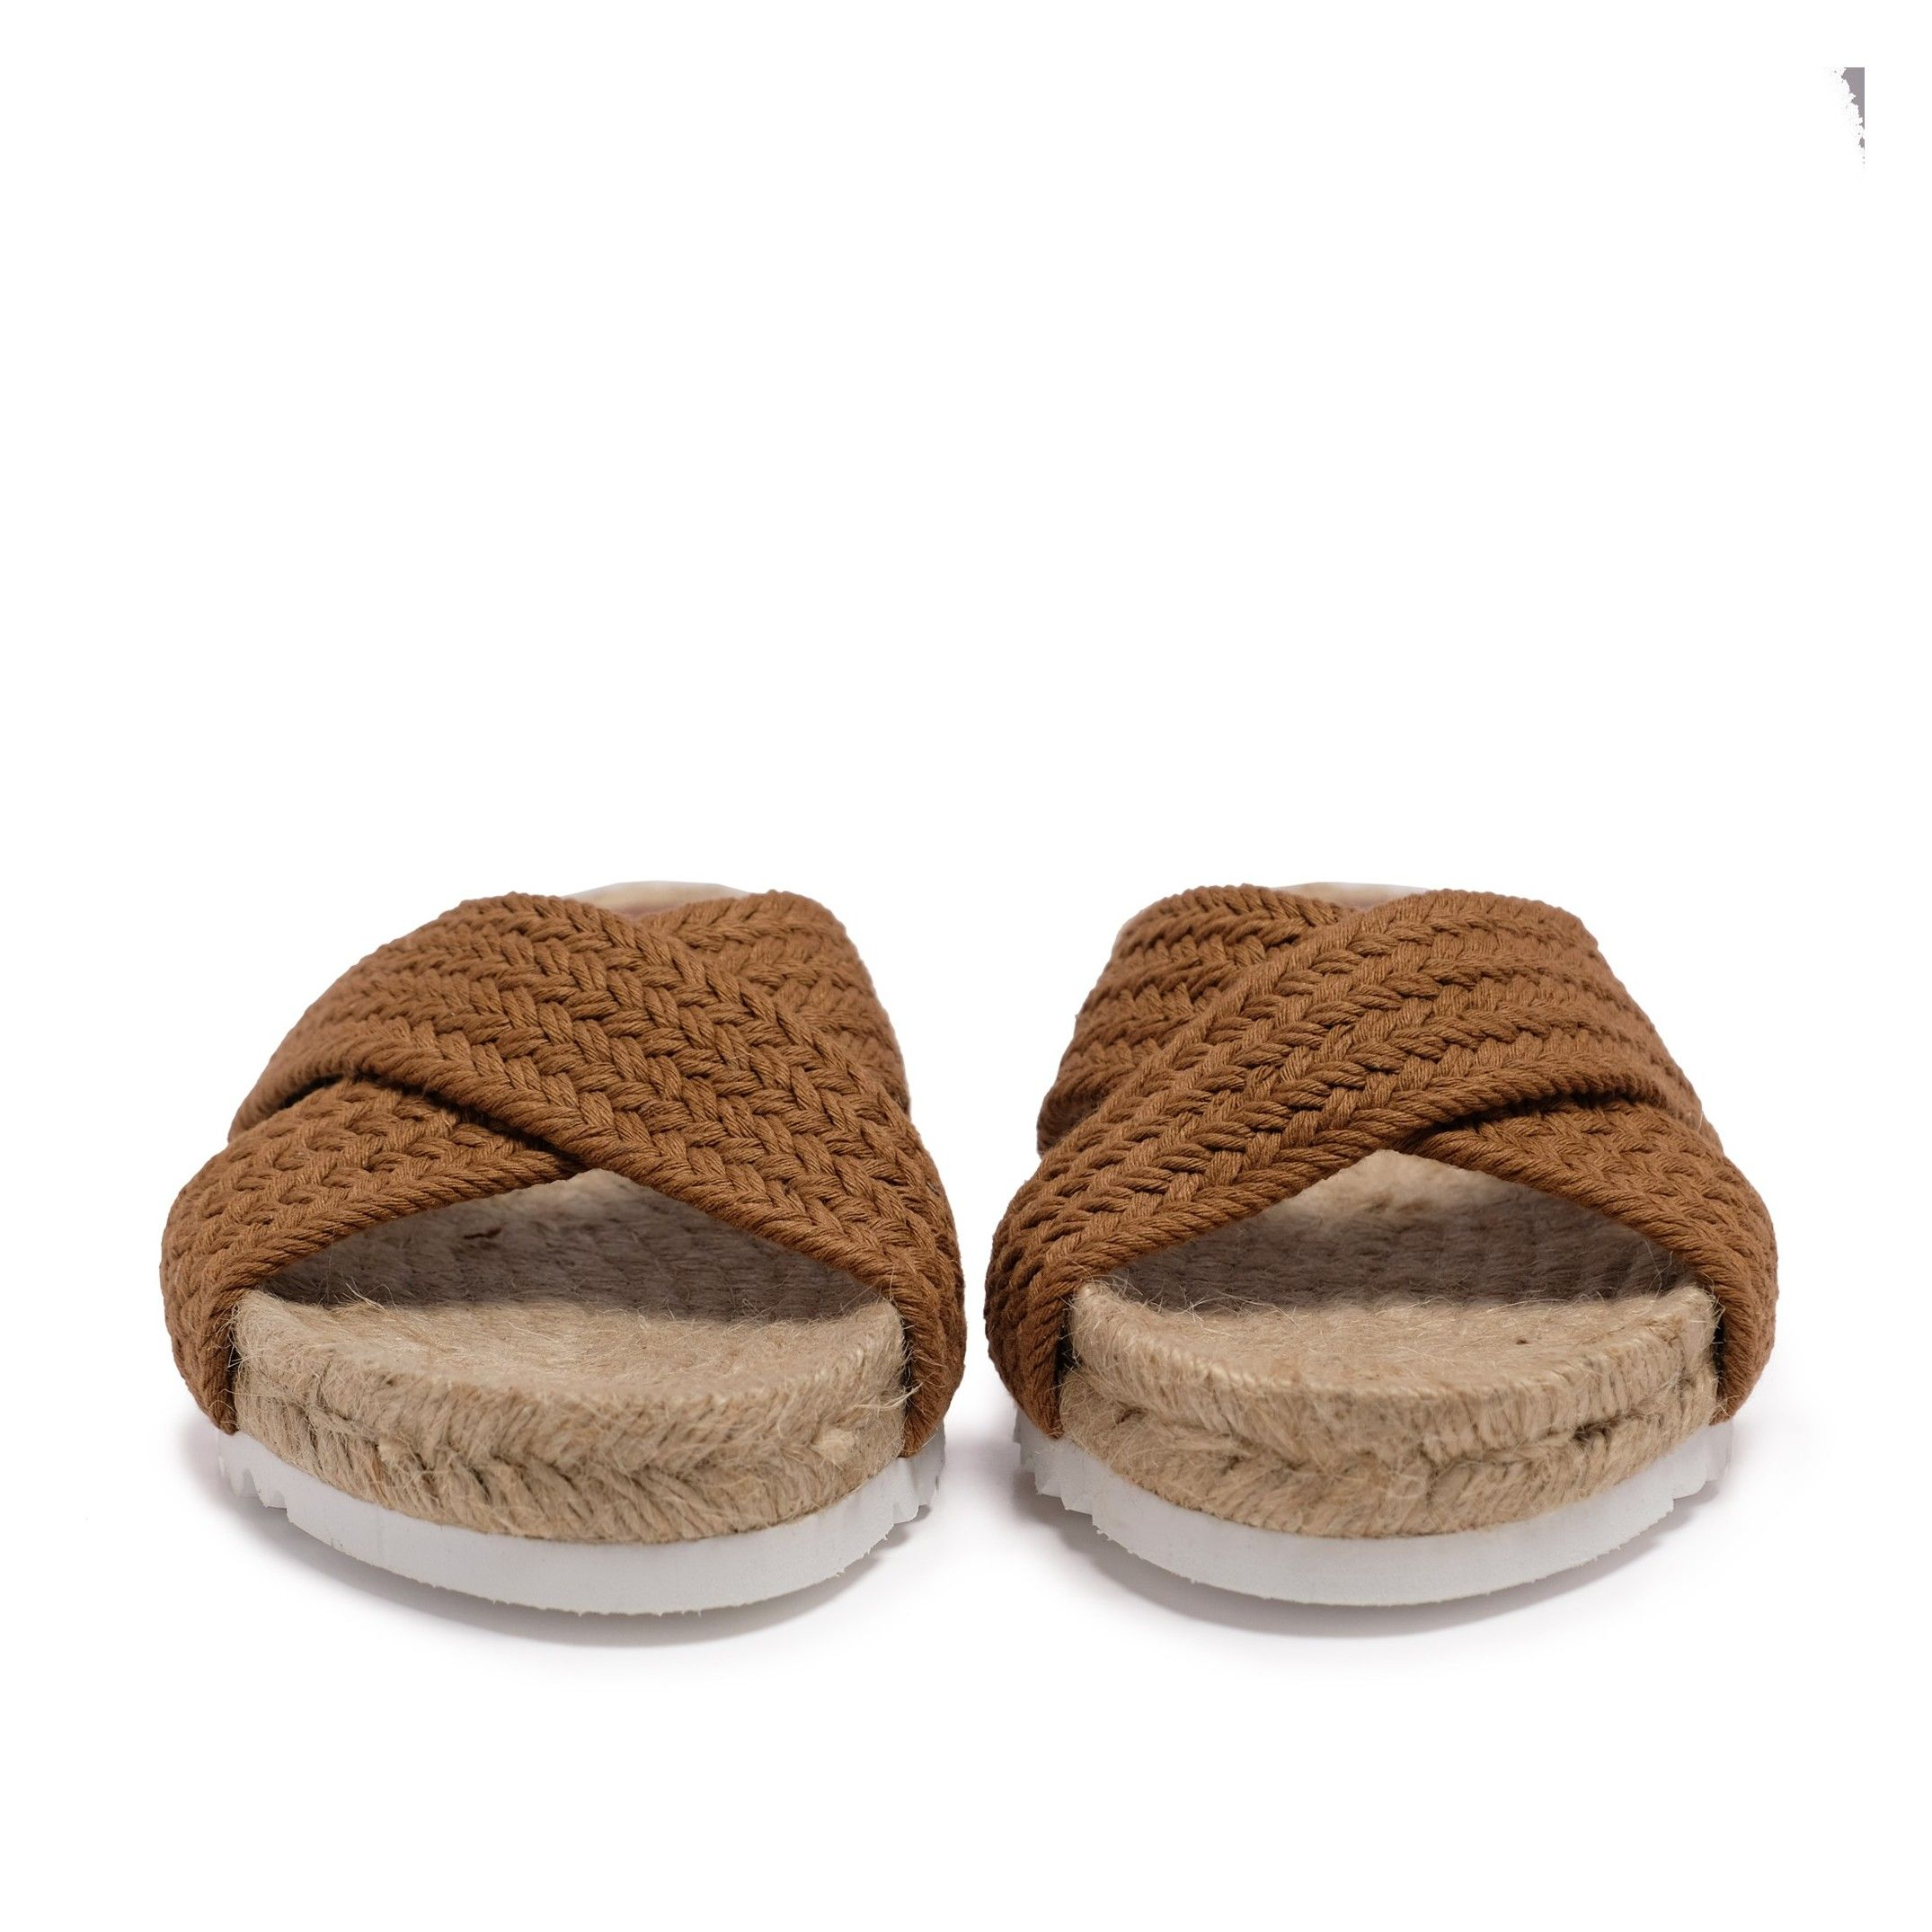 Flat Yute Sandal for Women Brown Shoes Eva Lopez